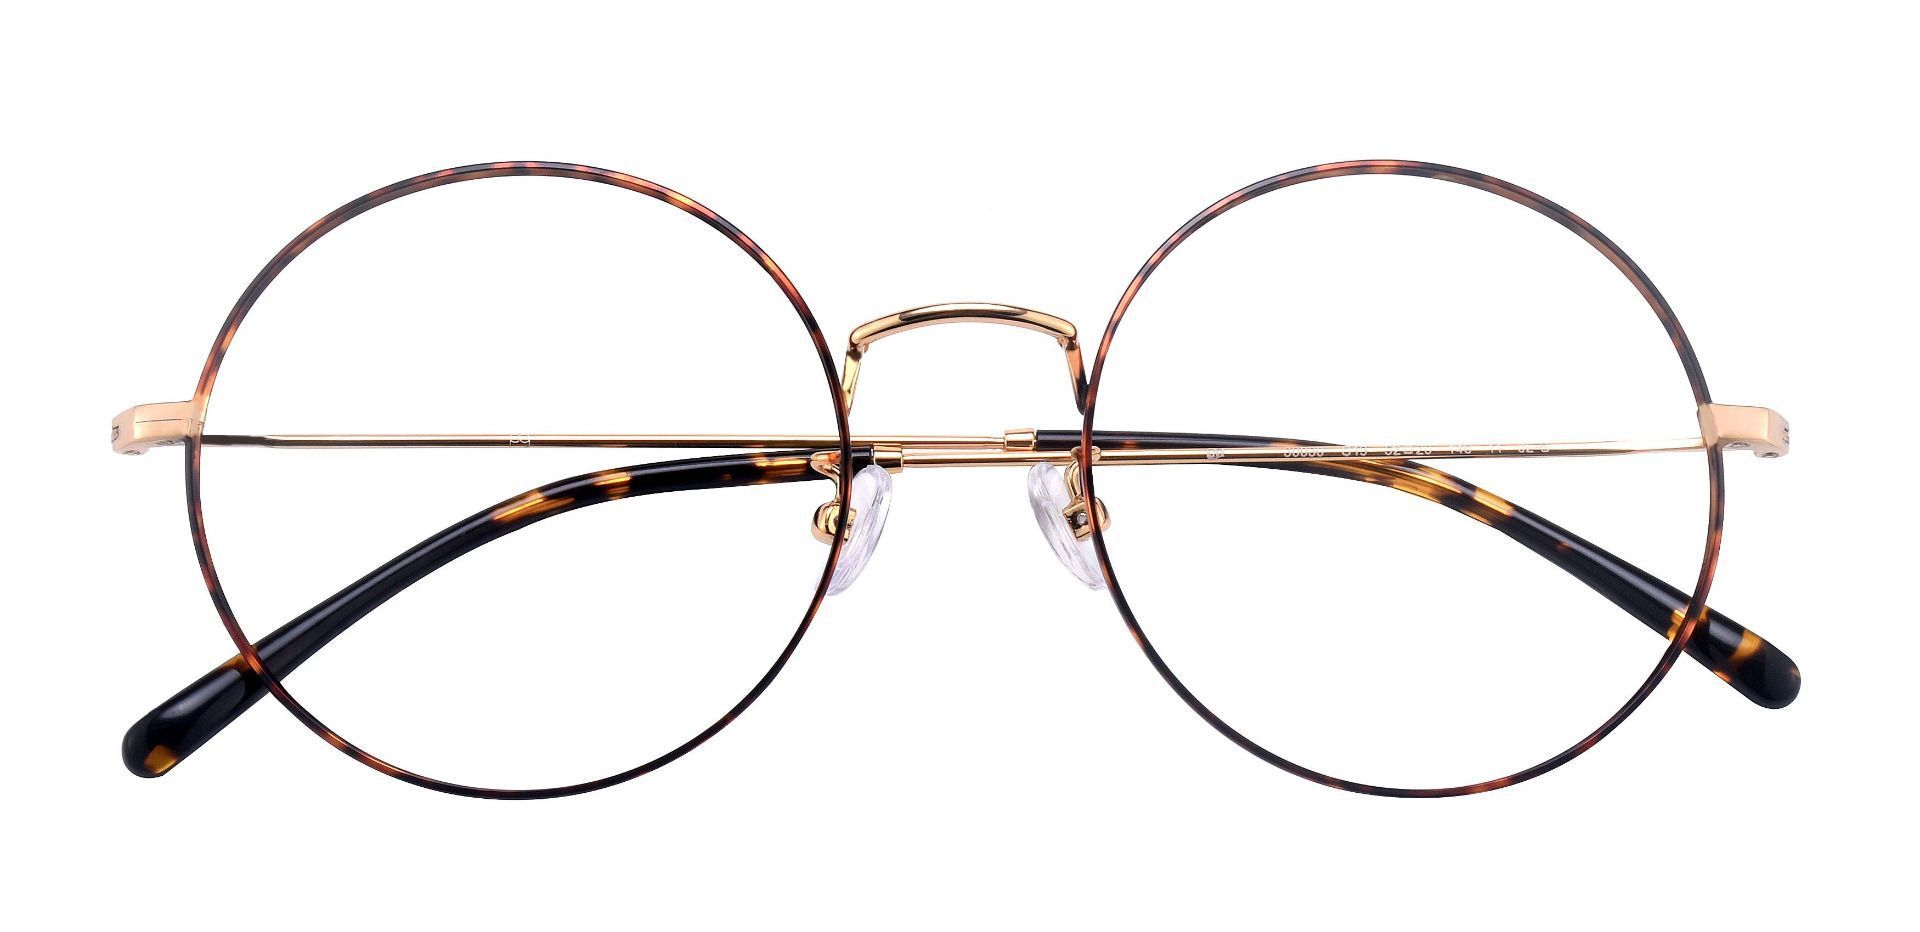 Sawyer Round Prescription Glasses - Tortoise/gold